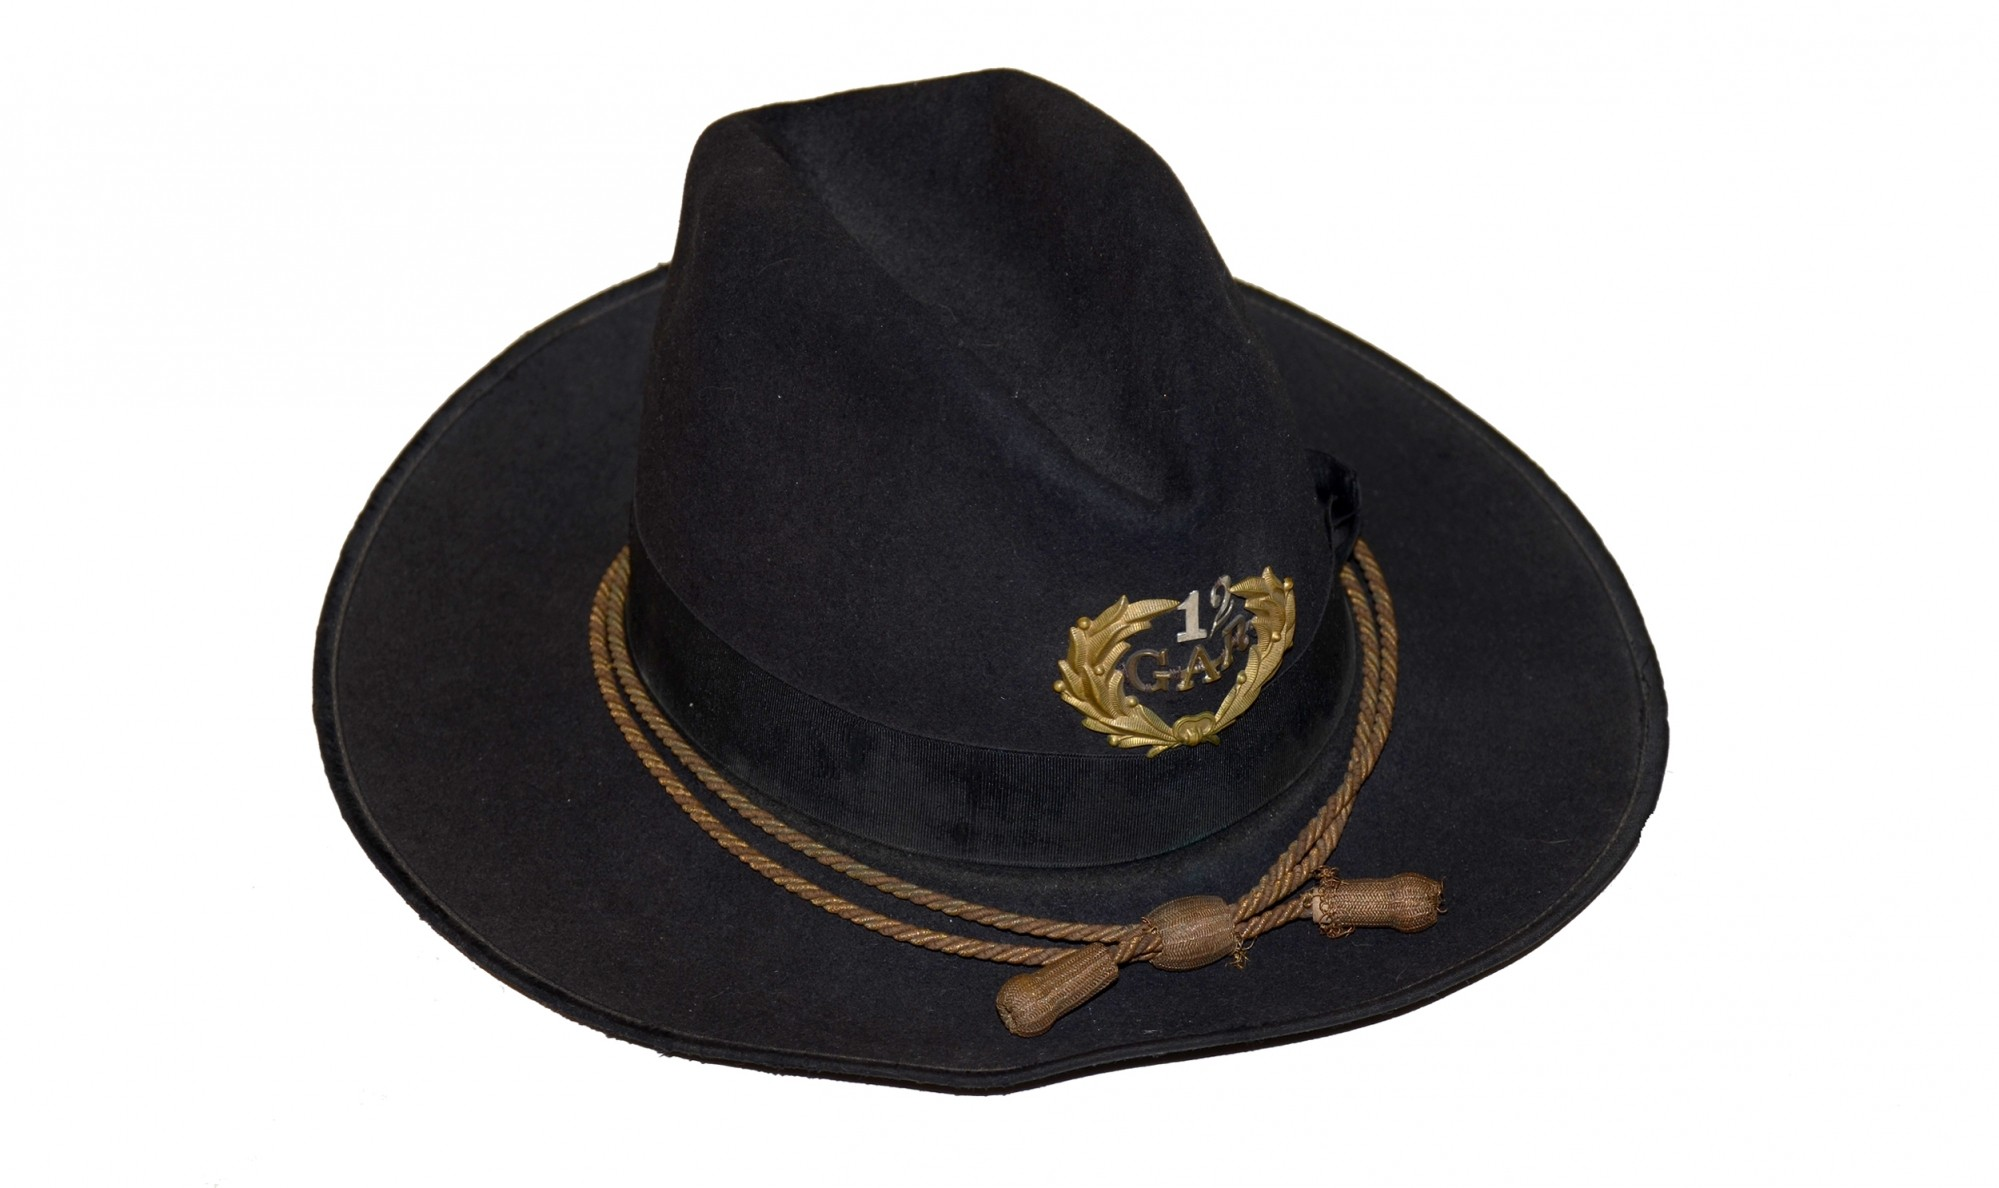 G.A. R. CAMPAIGN HAT, CA. 1910-1920